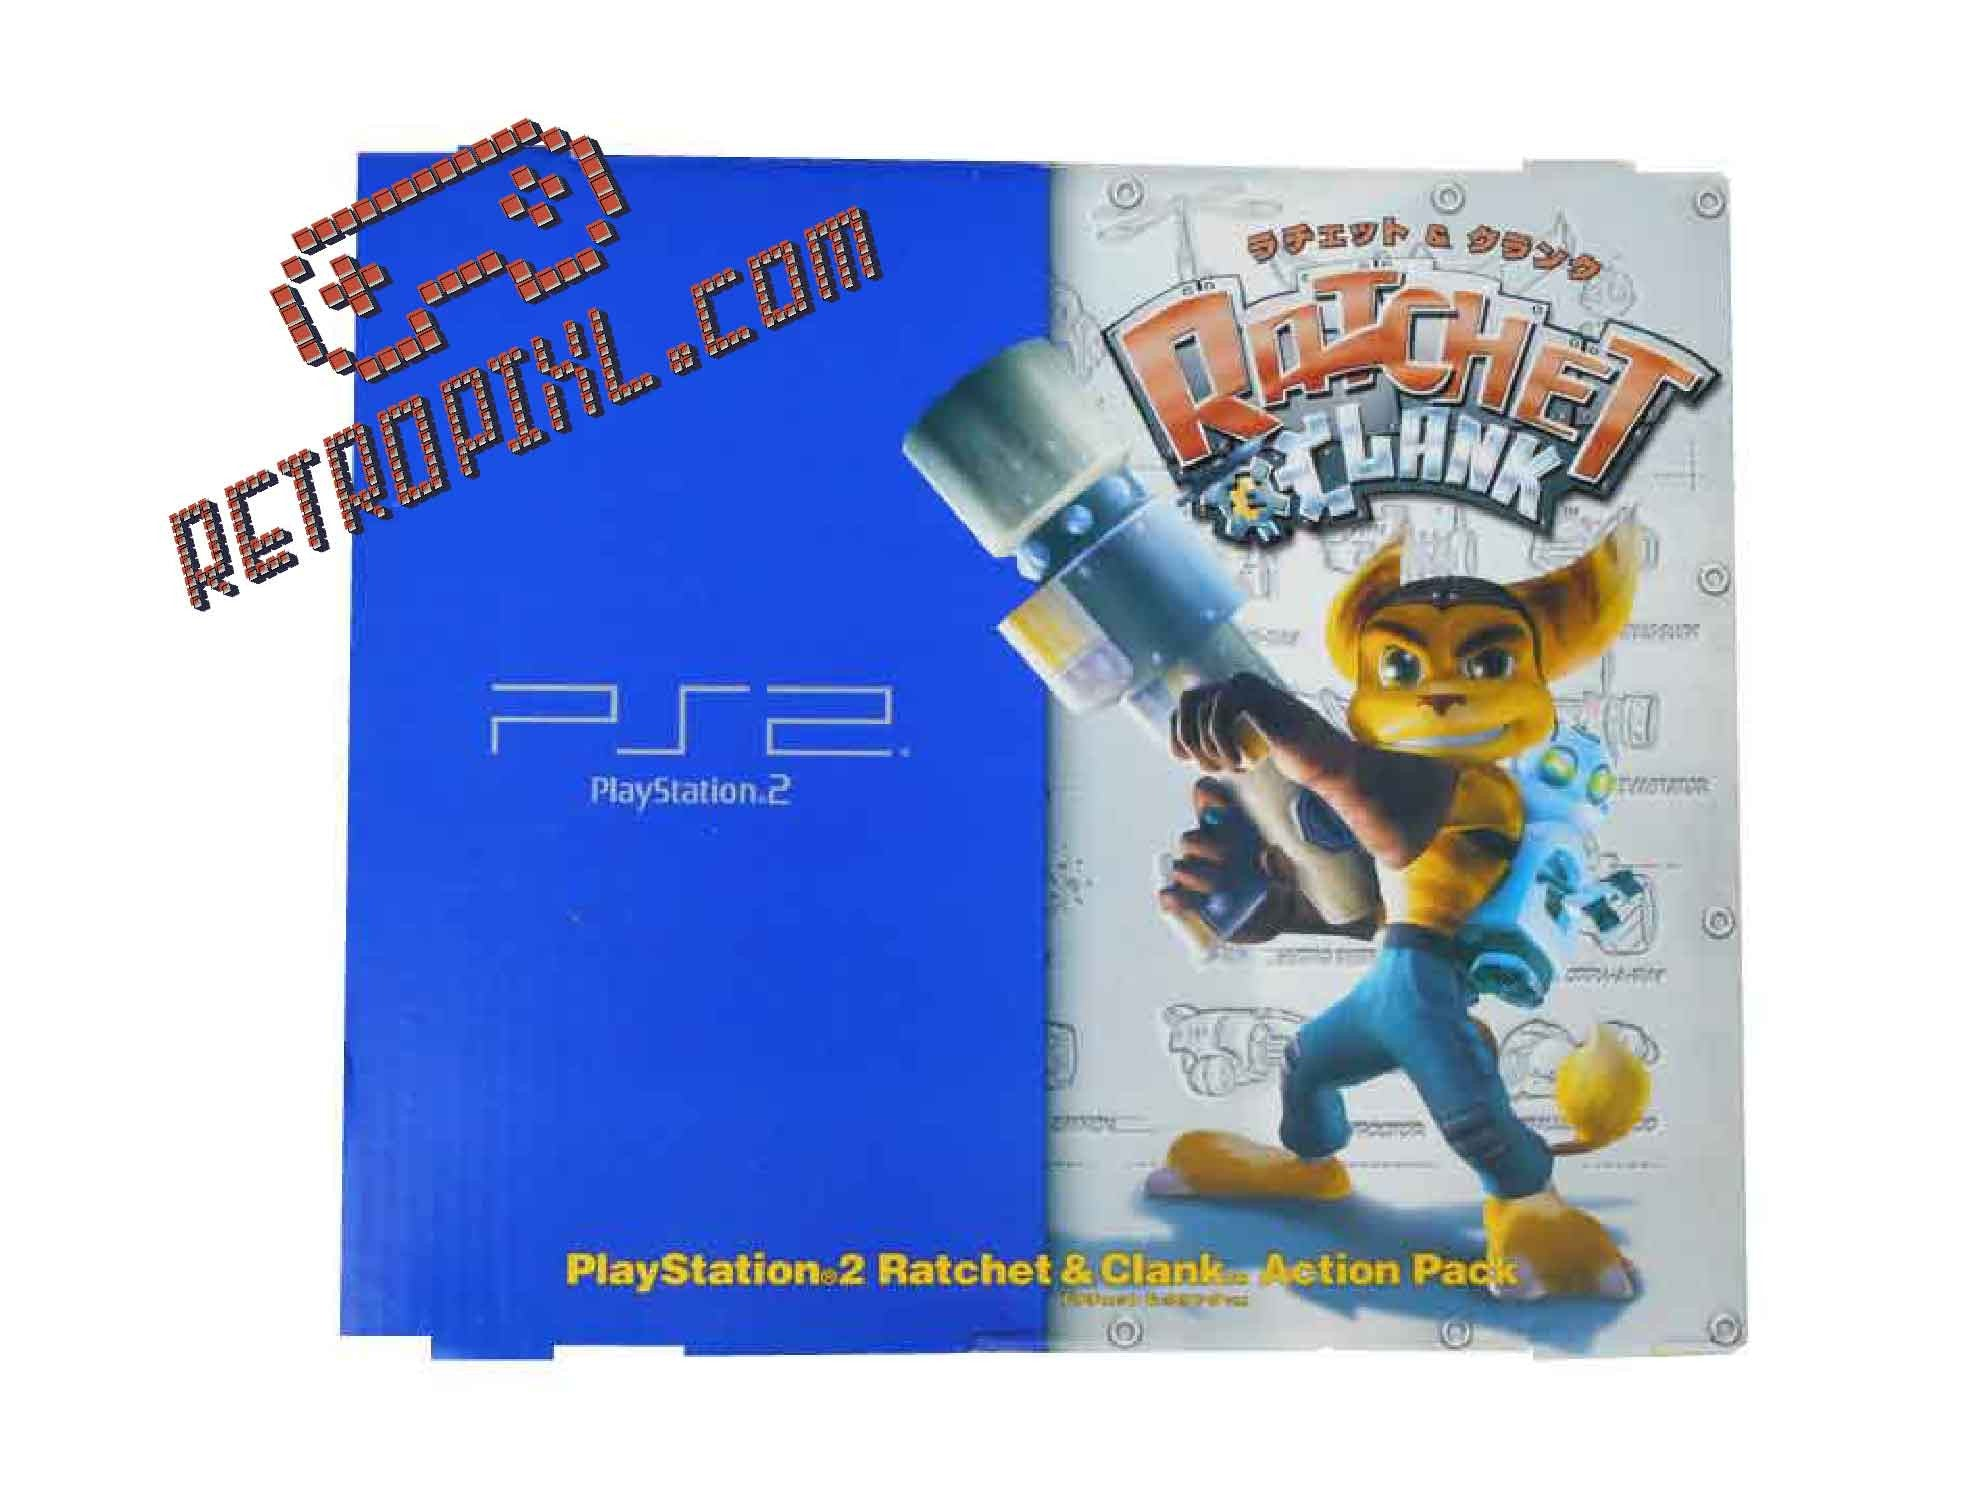 Sony Playstation 2 Ratchet & Clank LIMITED EDITION